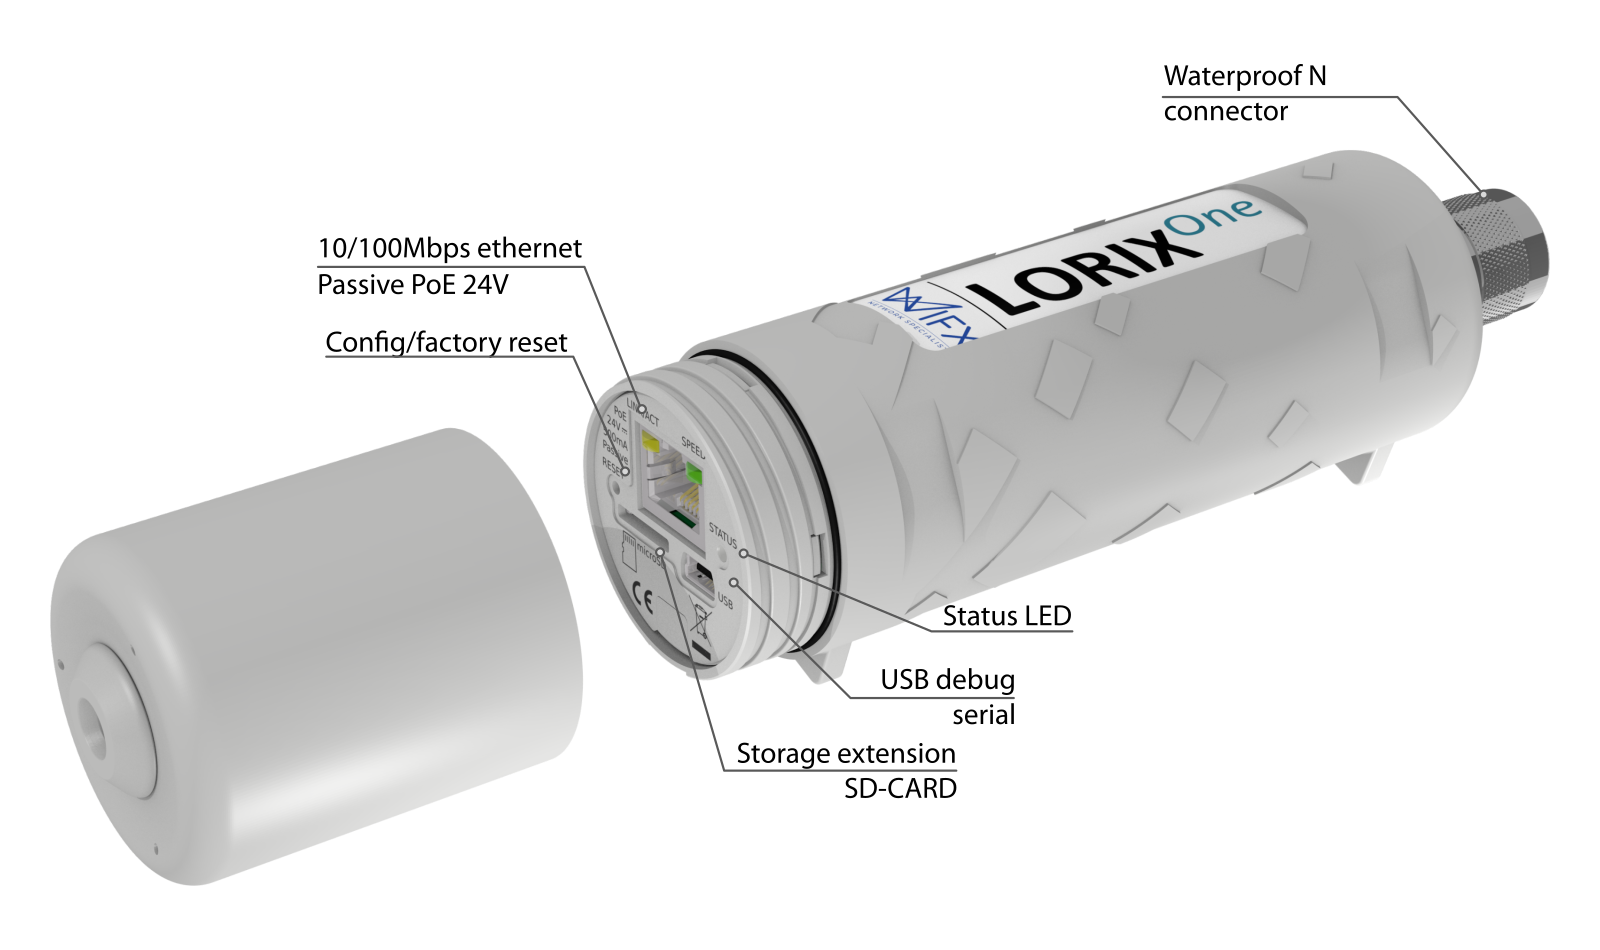 LORIX One LoRaWAN Gateway detail.